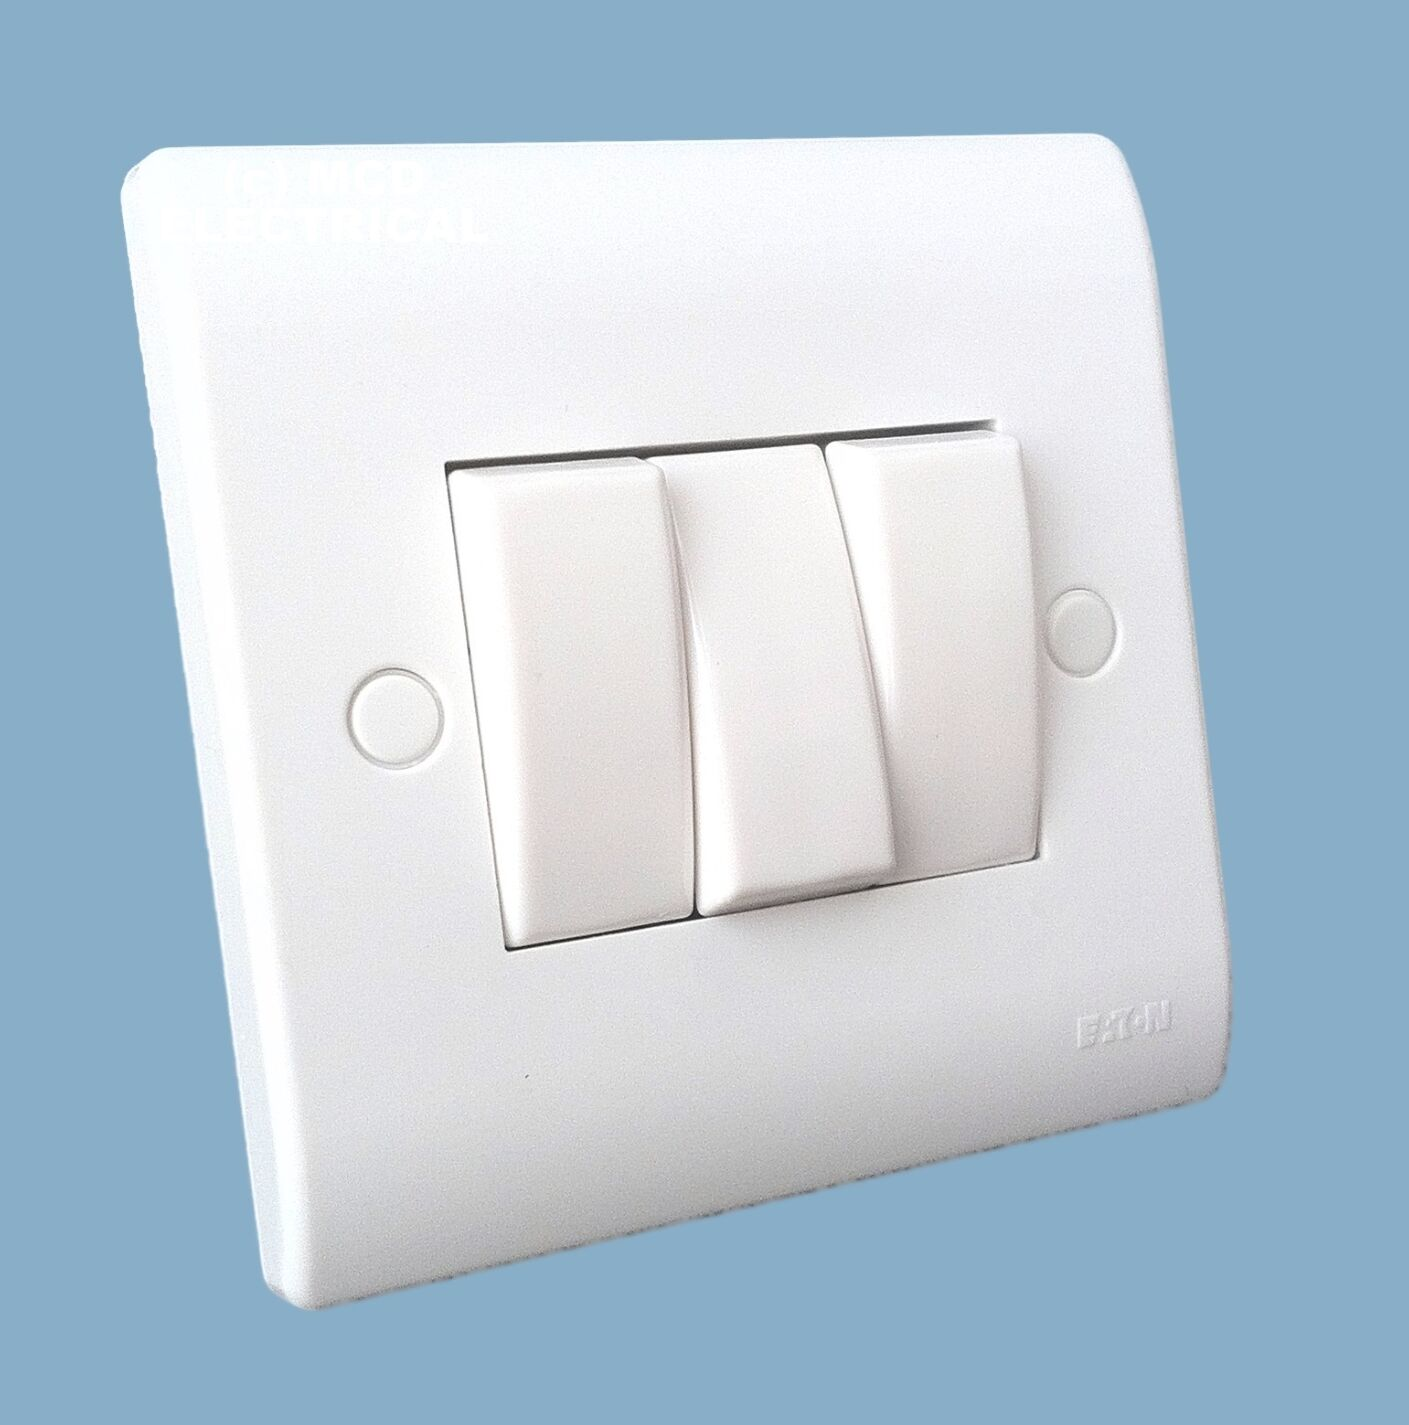 Eaton Mem P023 Light Switch 3 Gang Triple 10a 2 Way 645 Uk 1 Of 1only 5 Available